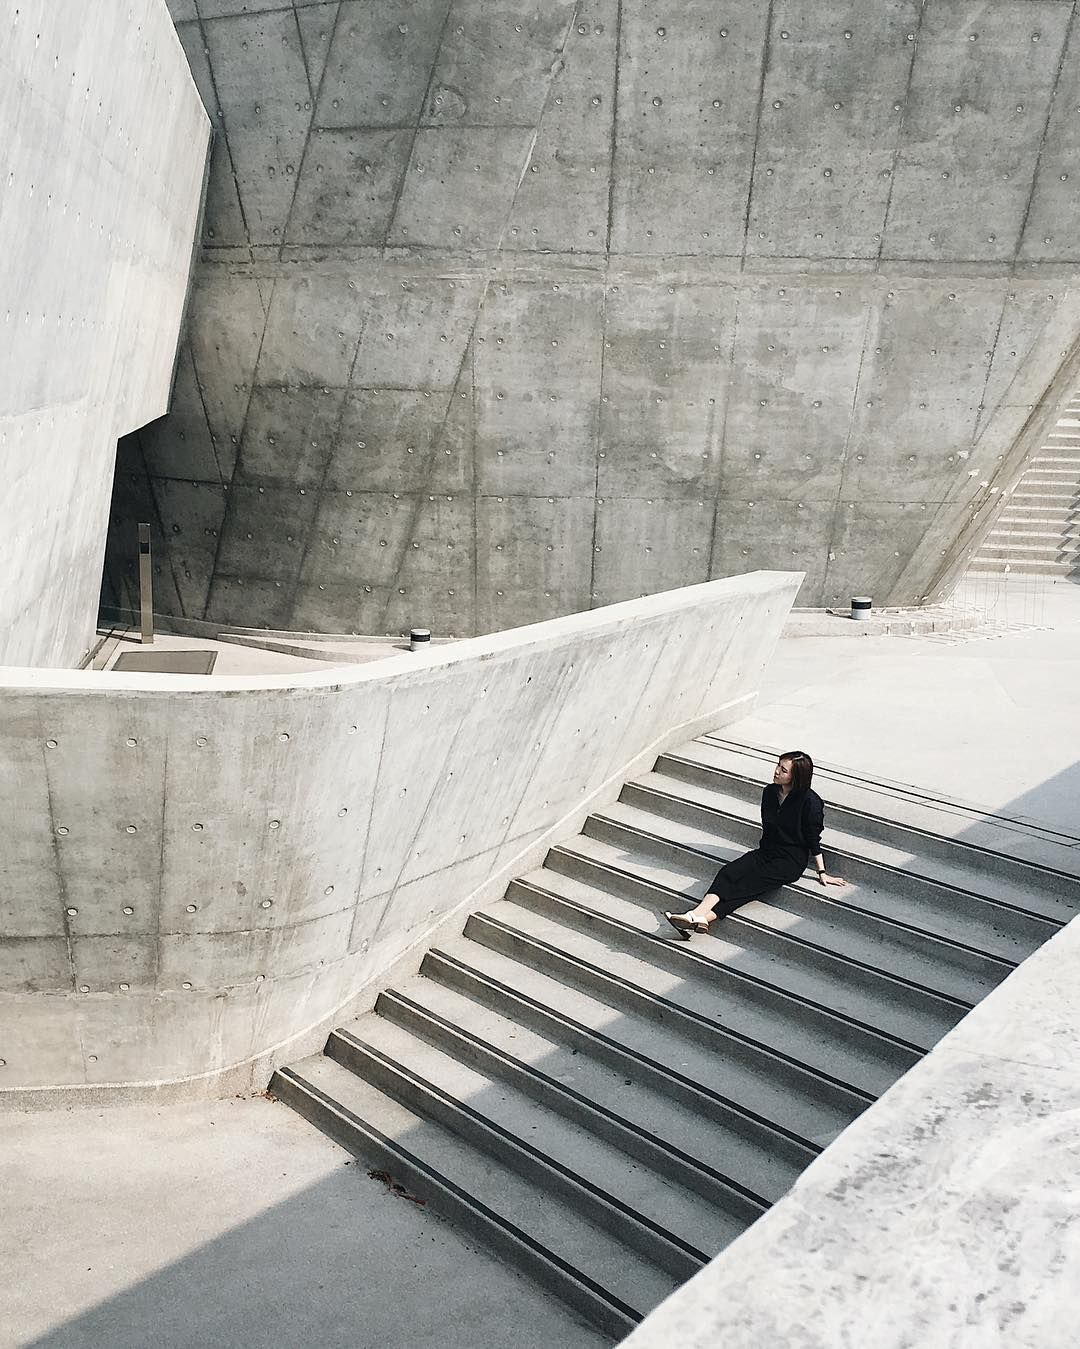 The Most Instagrammable Architecture Spots In Hong Kong